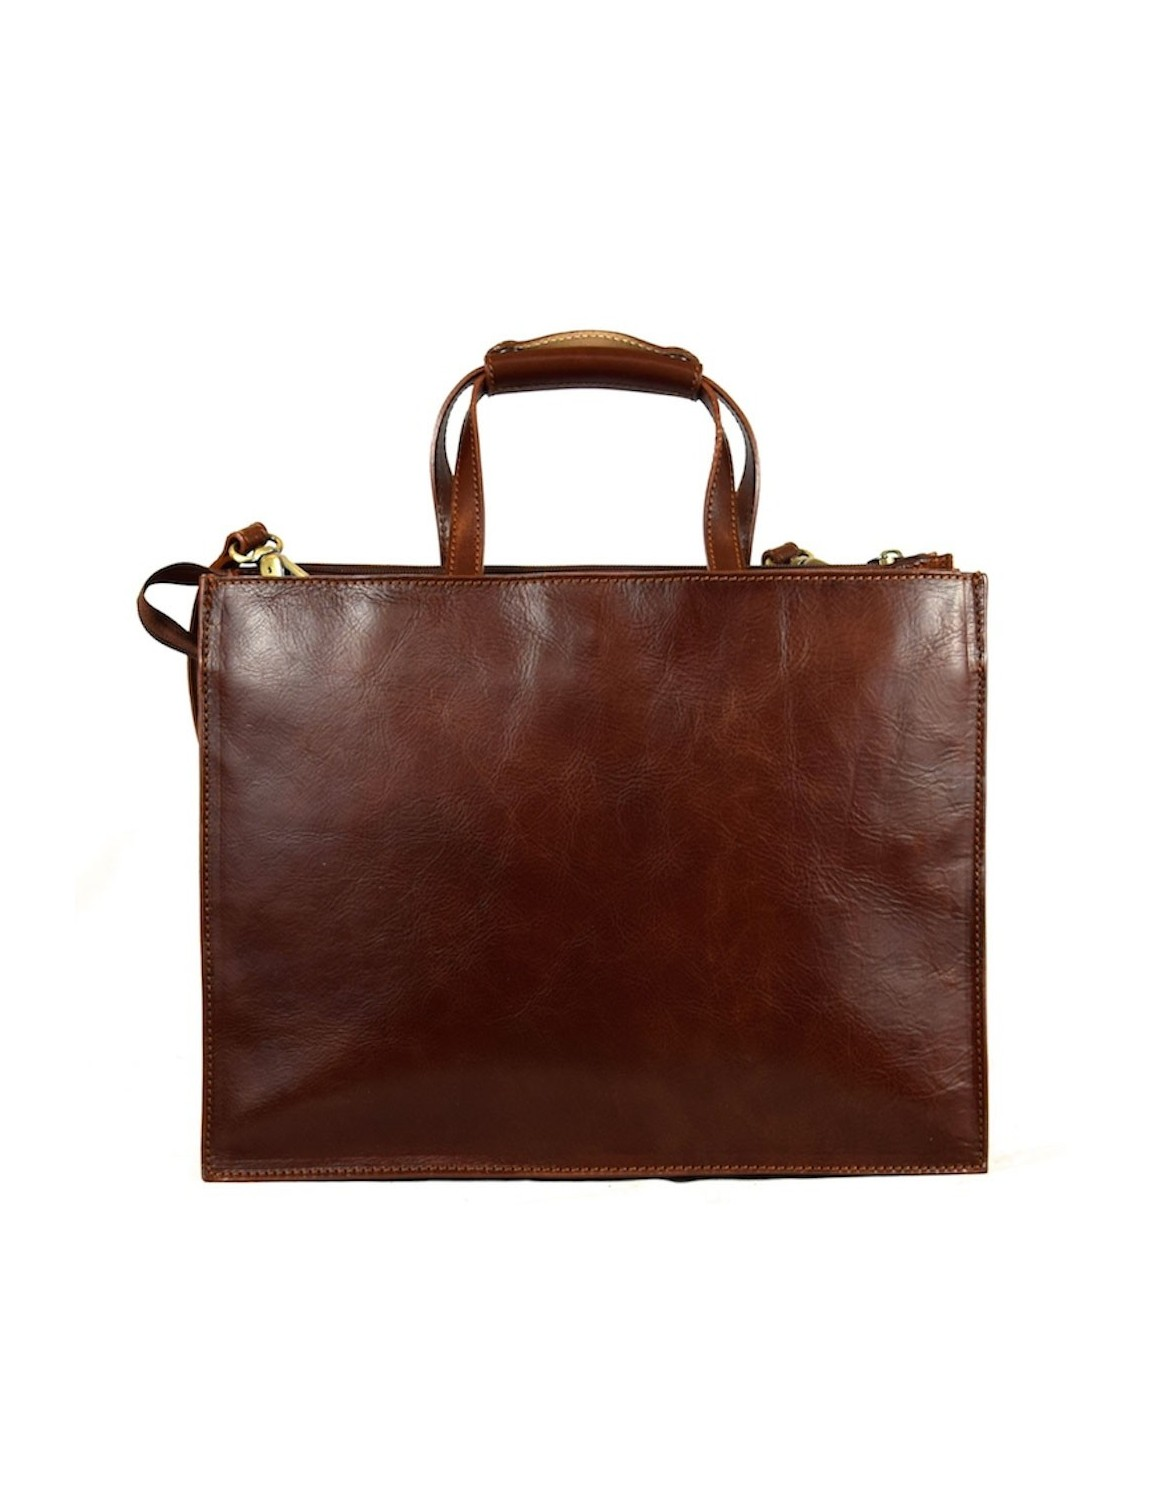 27 Model Womens Leather Business Bag